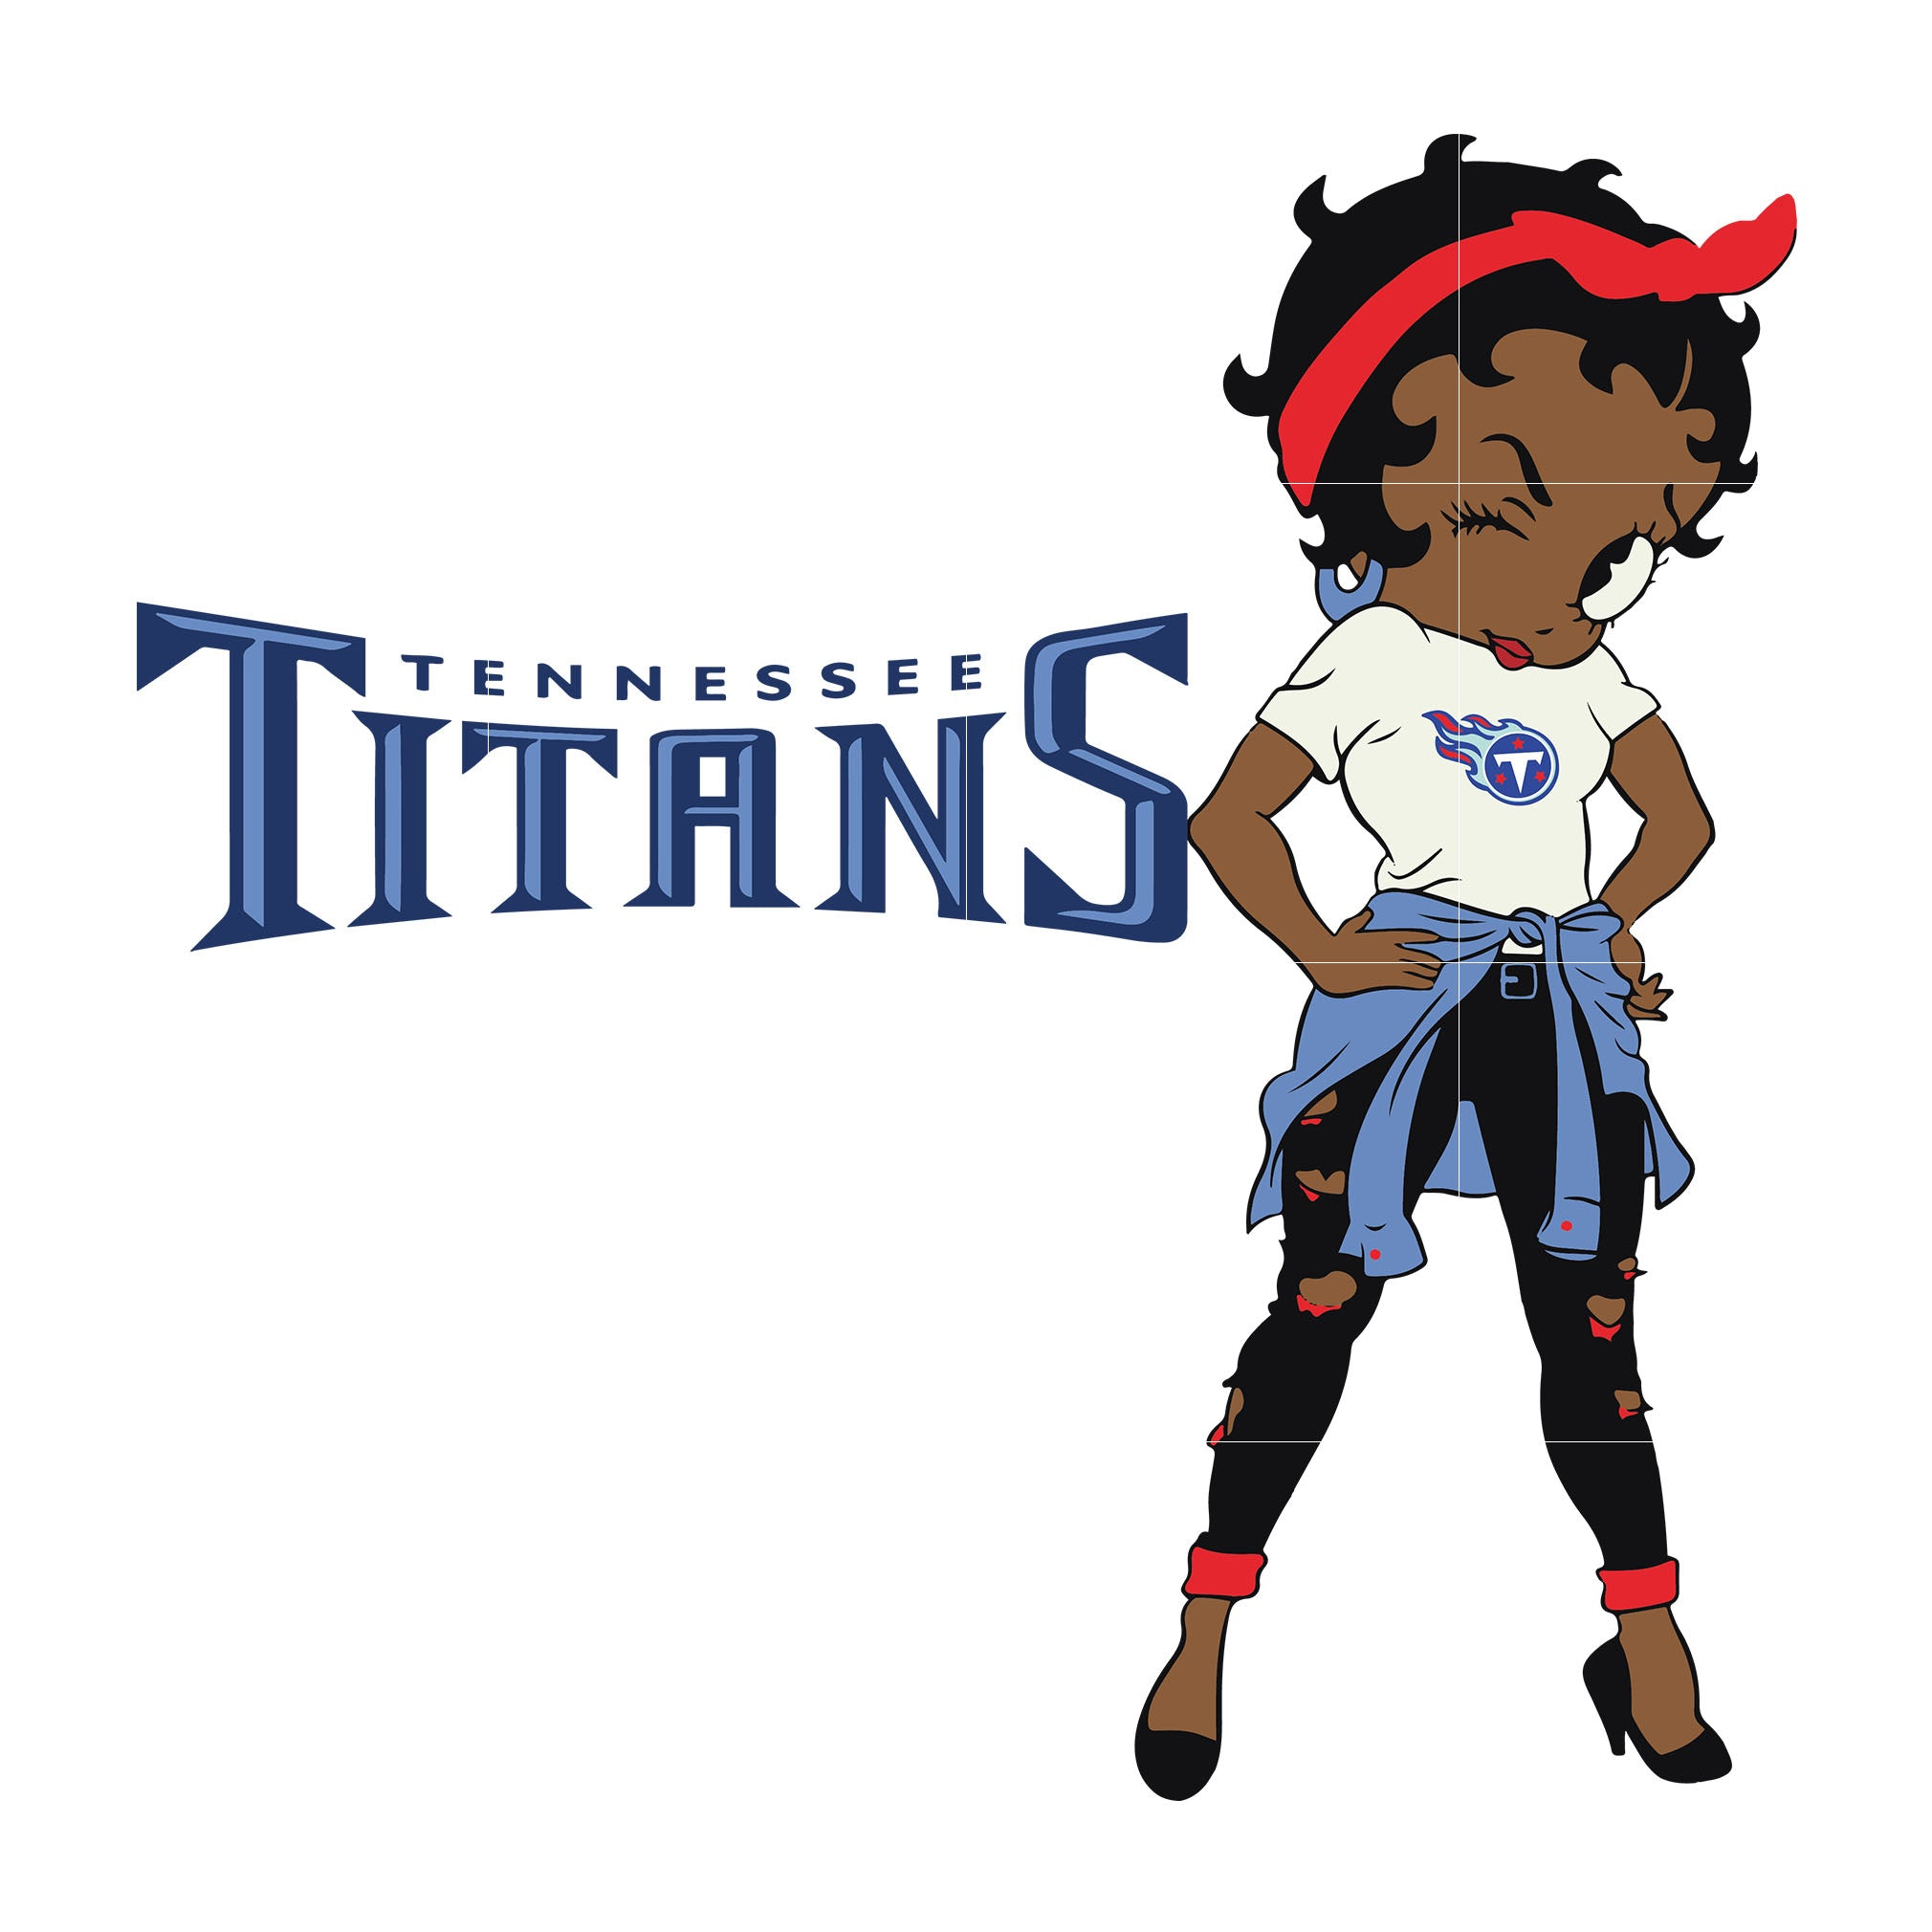 Betty boop Tennessee Titans, Tennessee Titans svg, png, dxf, eps. INSTANT DOWNLOAD